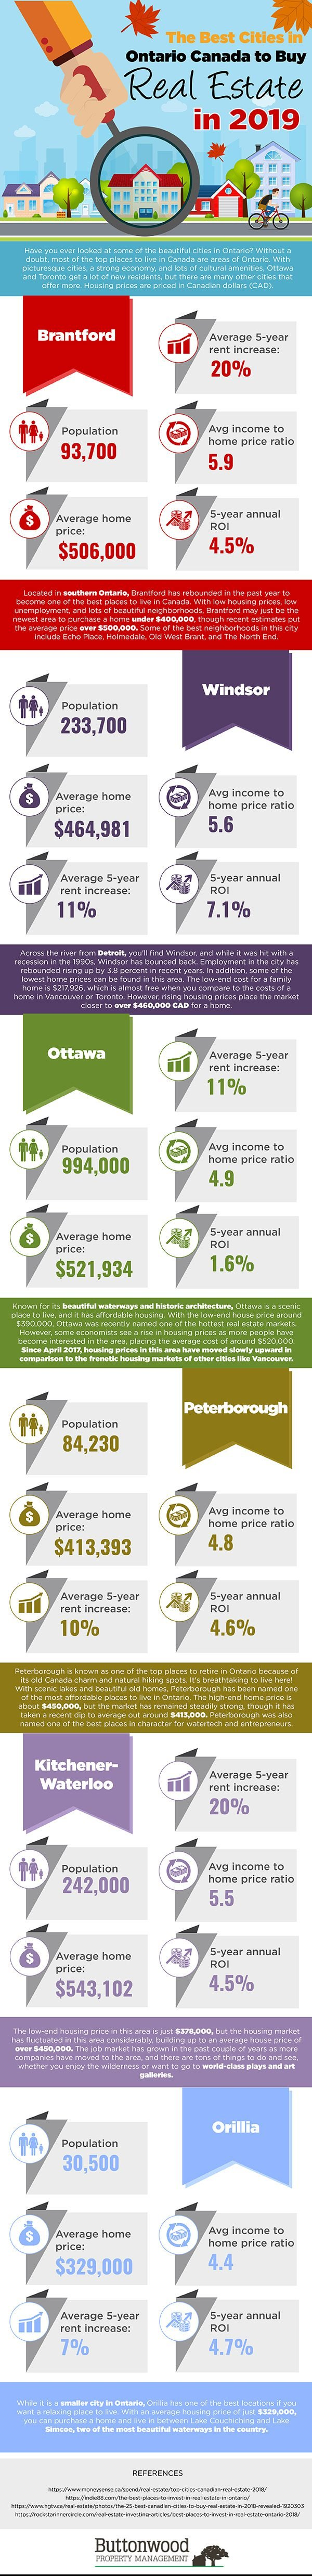 where to invest in real estate in ontario